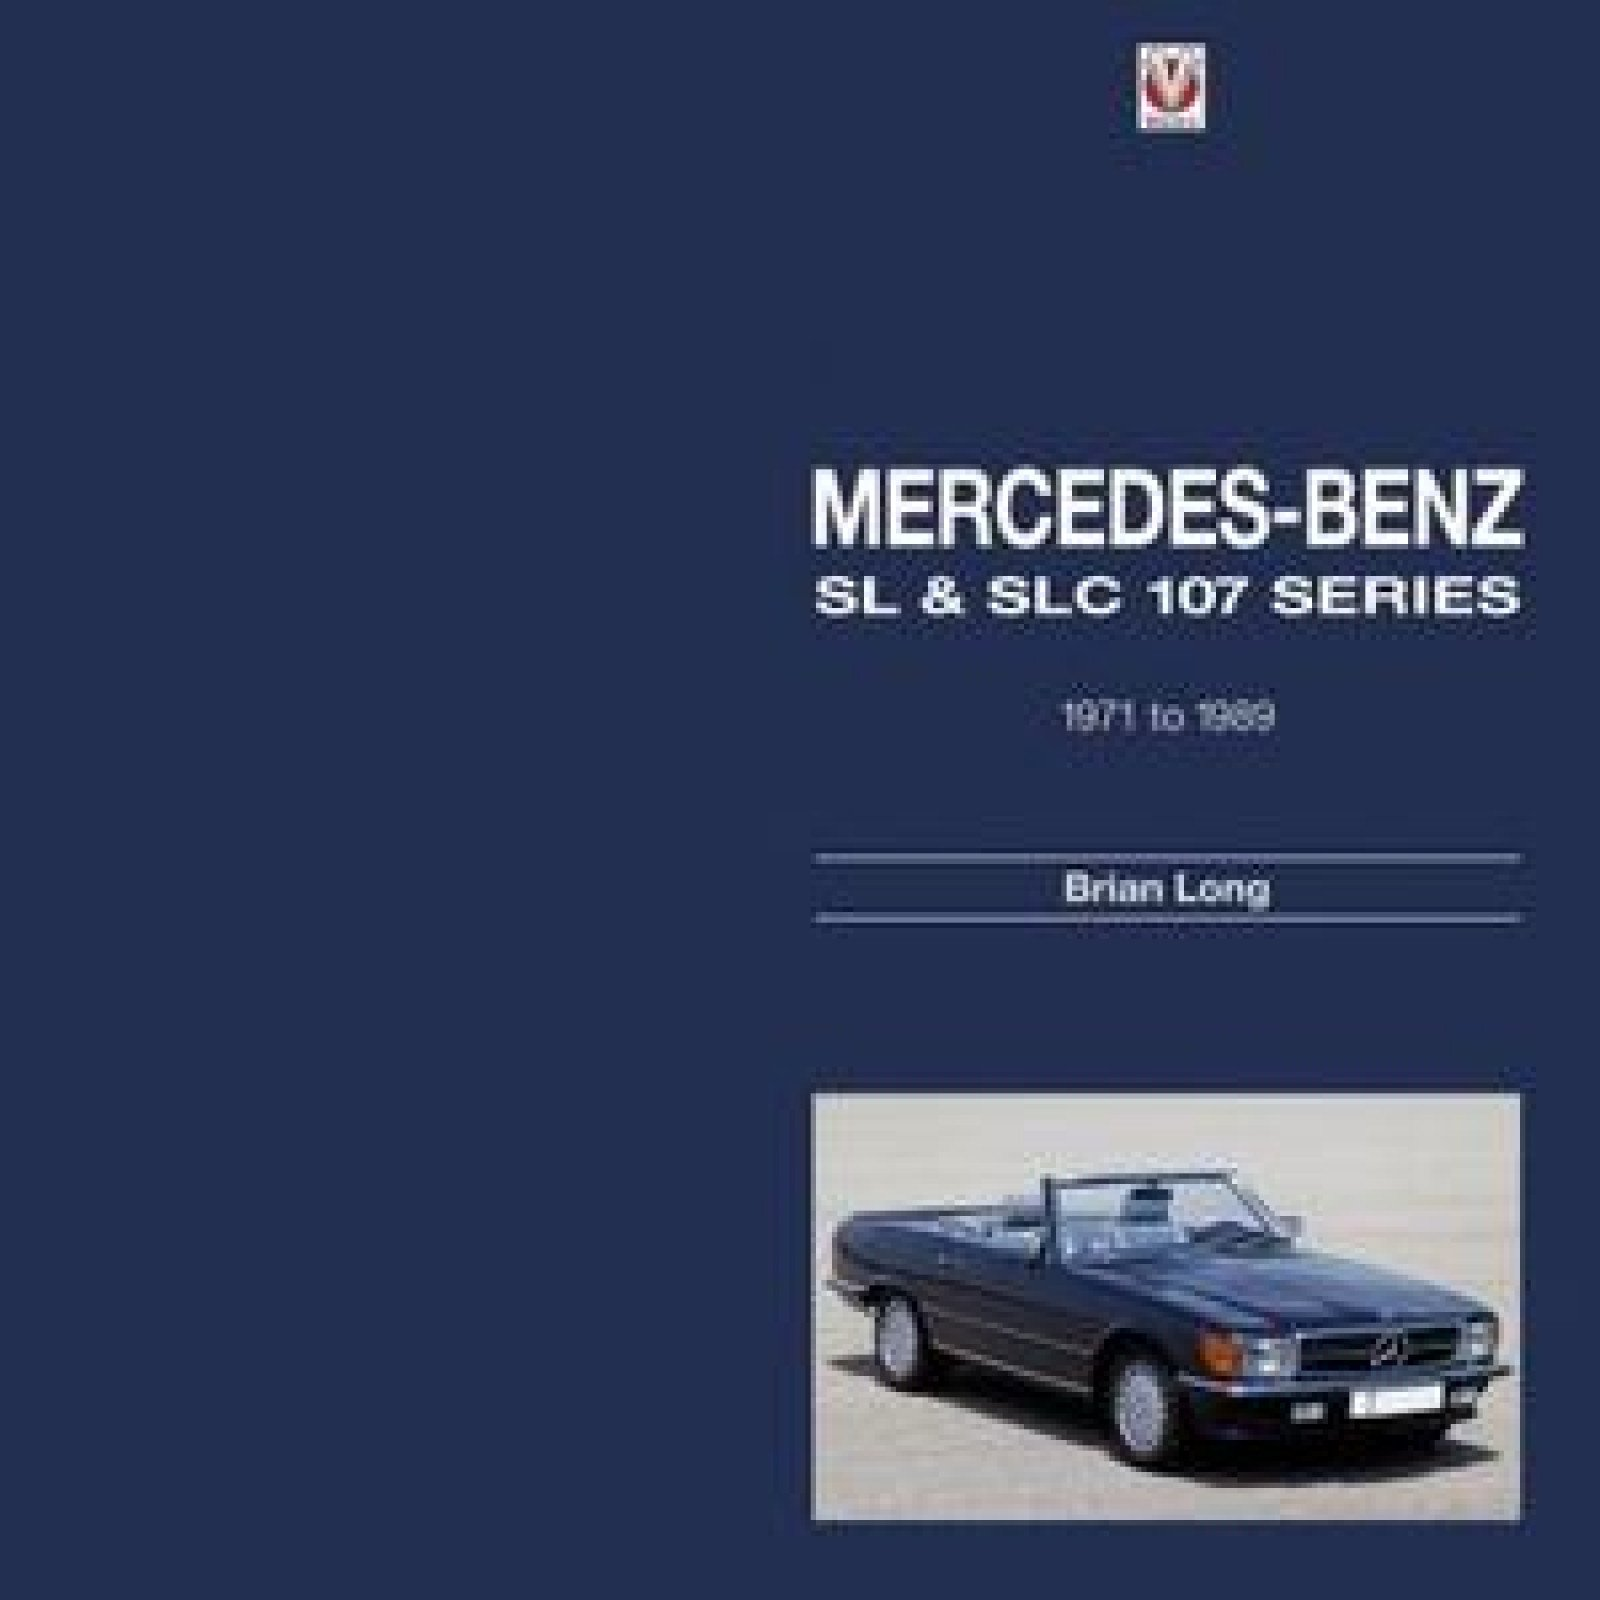 Automotive area 2011 mercedes benz sl r230 - Mercedes Benz Sl Slc 107 Series 1971 To 1989 Book By Brian Long